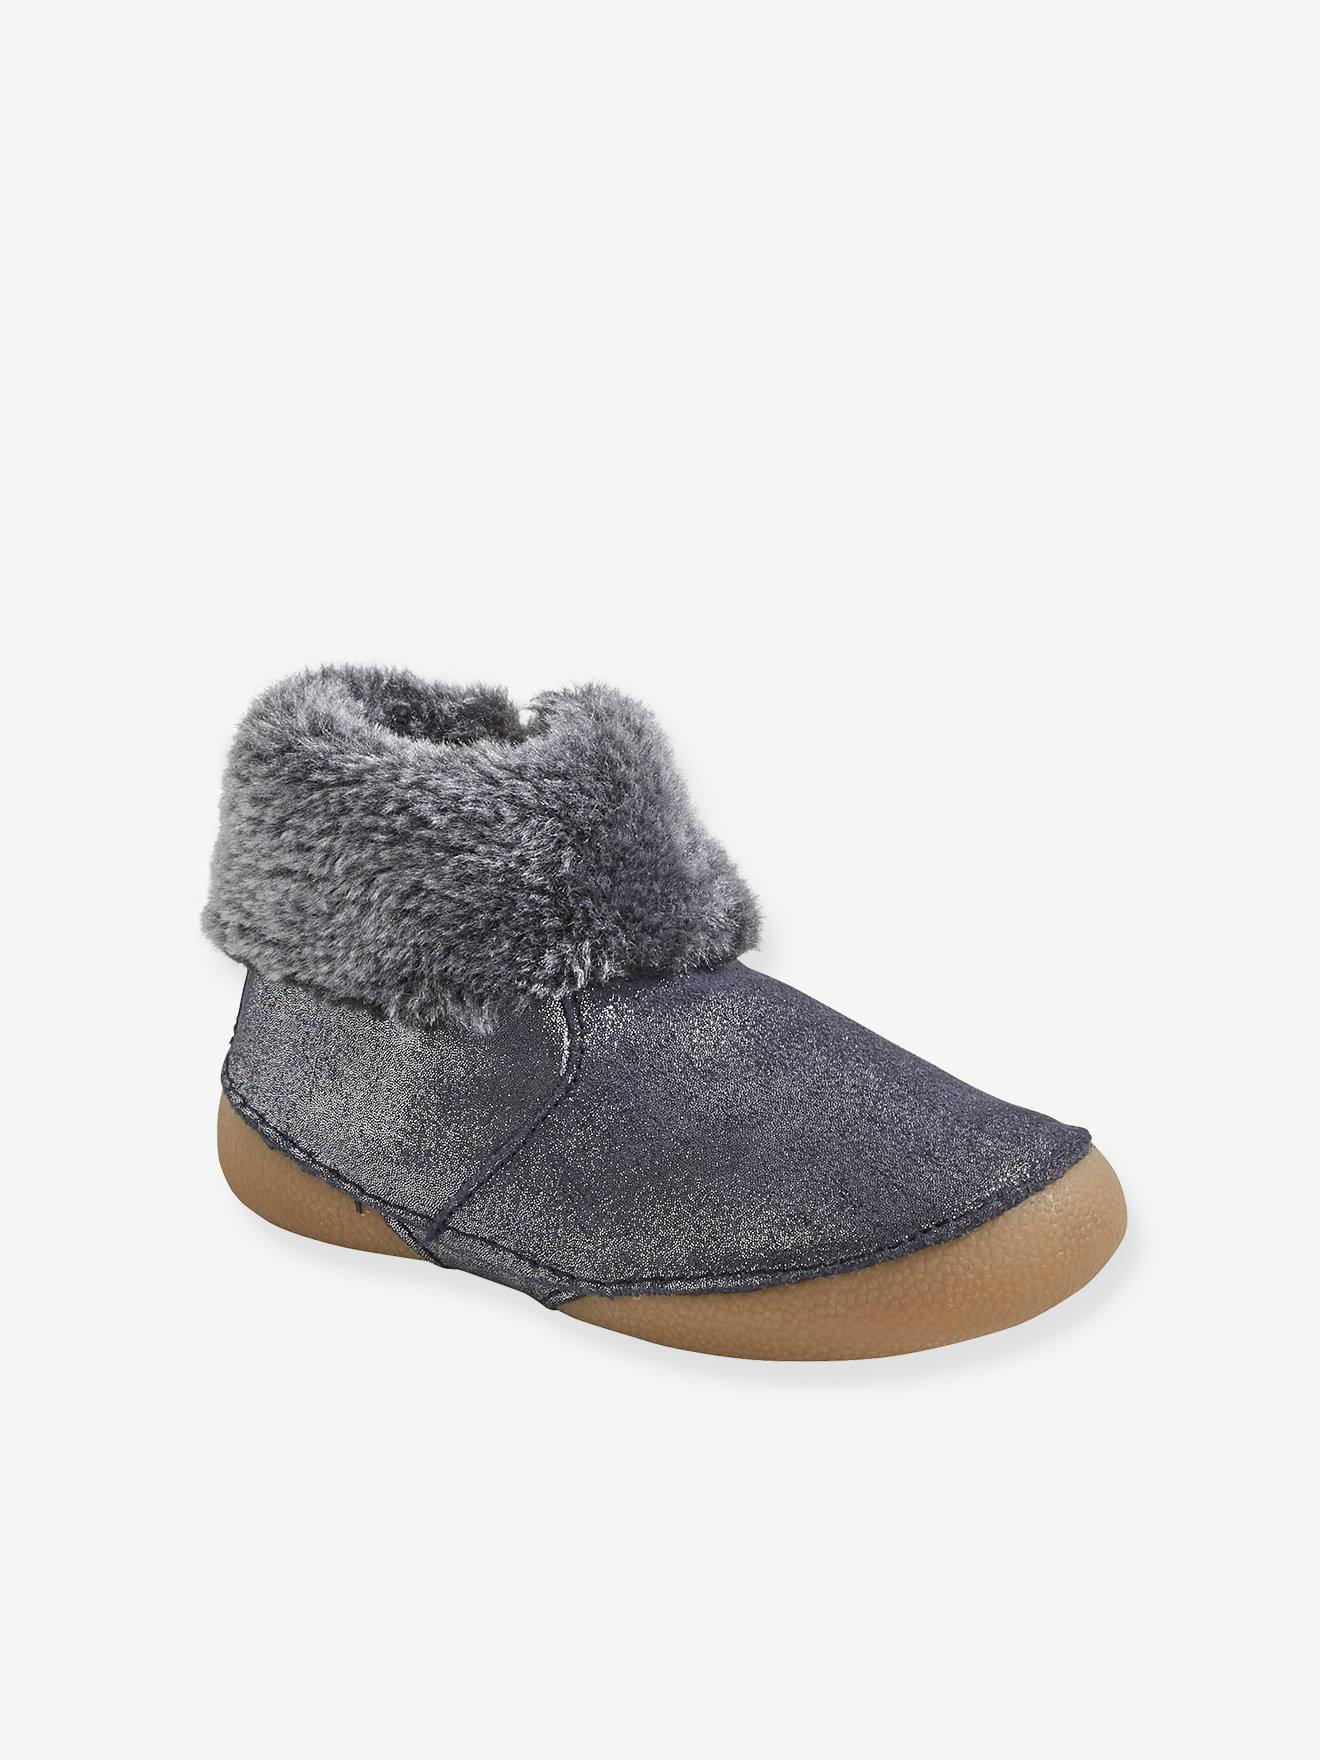 Soft Leather Pram Shoes with Faux Fur